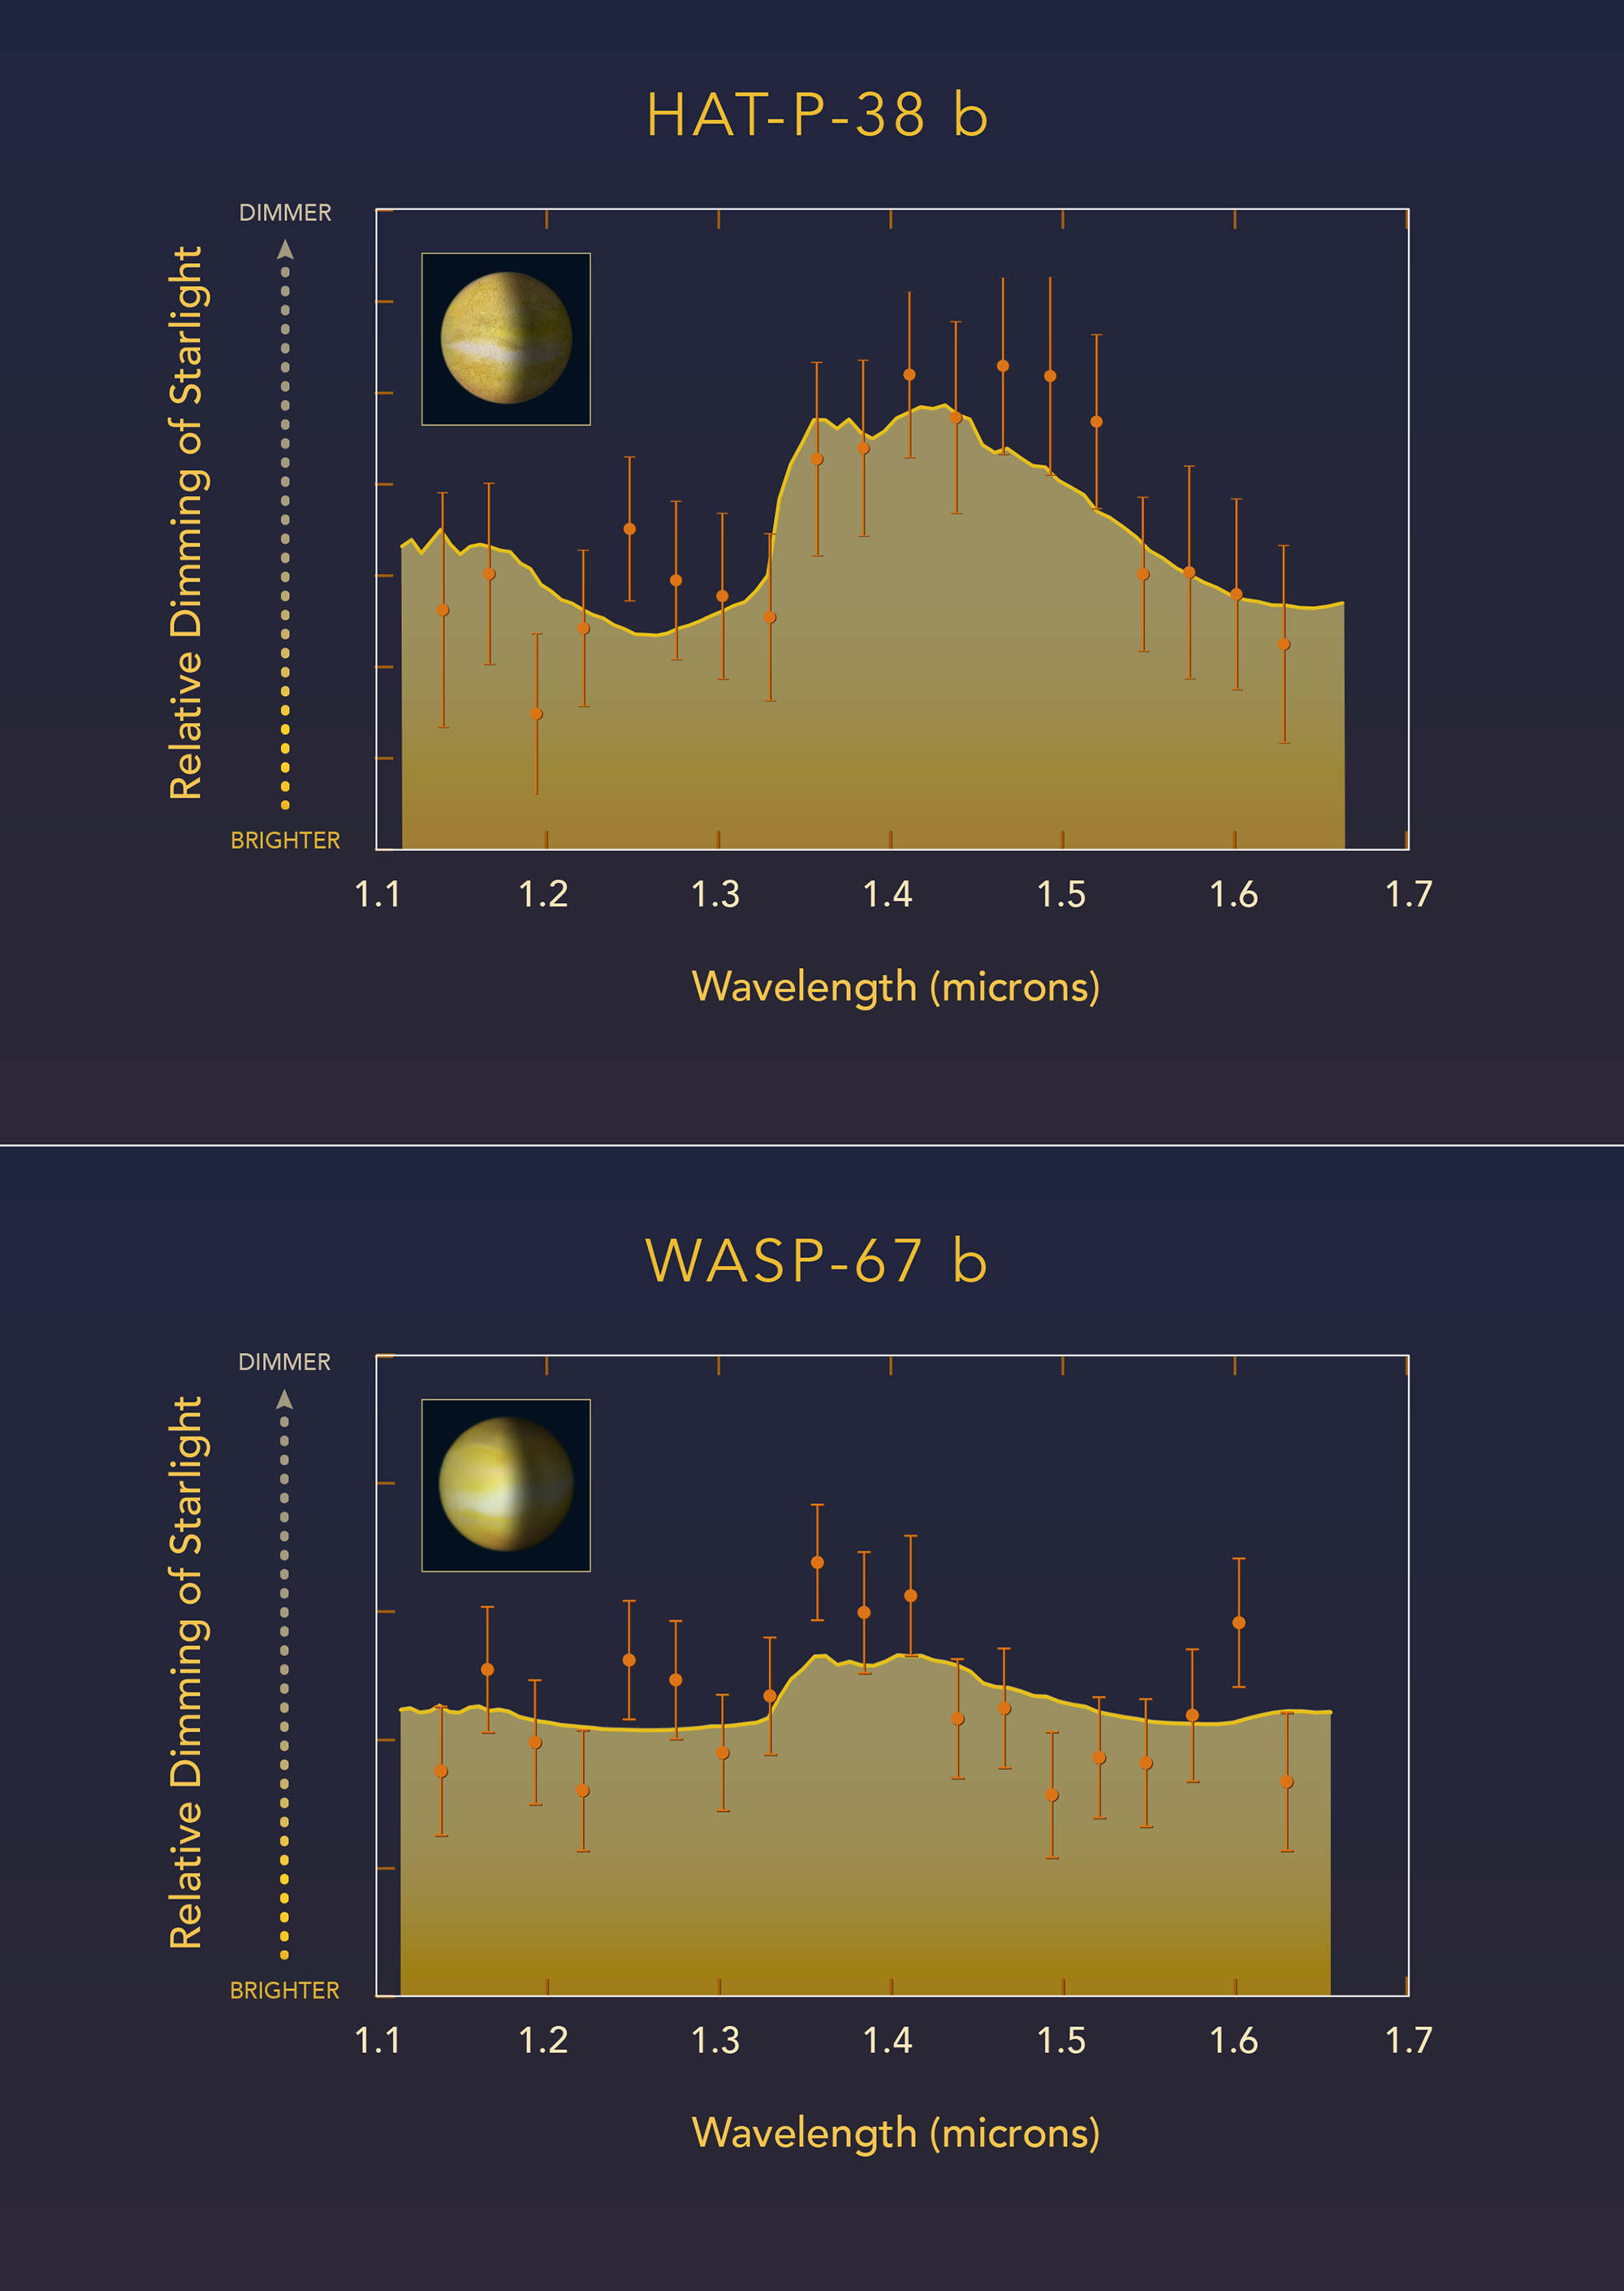 """This diagram compares Hubble Space Telescope observations of two """"hot Jupiter""""-class planets orbiting very closely to different sunlike stars. Astronomers measured how light from each parent star is filtered through each planet's atmosphere. HAT-P-38 b did have a water signature indicated by the absorption-feature peak in the spectrum. This is interpreted as indicating the upper atmosphere is free of clouds or hazes. WASP-67 b, has a flat spectrum that lacks any water-absorption feature, suggesting most of the planet's atmosphere is masked by high-altitude clouds. - Credits: Artwork: NASA, ESA, and Z. Levy (STScI); Credit: Science: NASA, ESA, and G. Bruno (STScI) - Click to enlarge"""